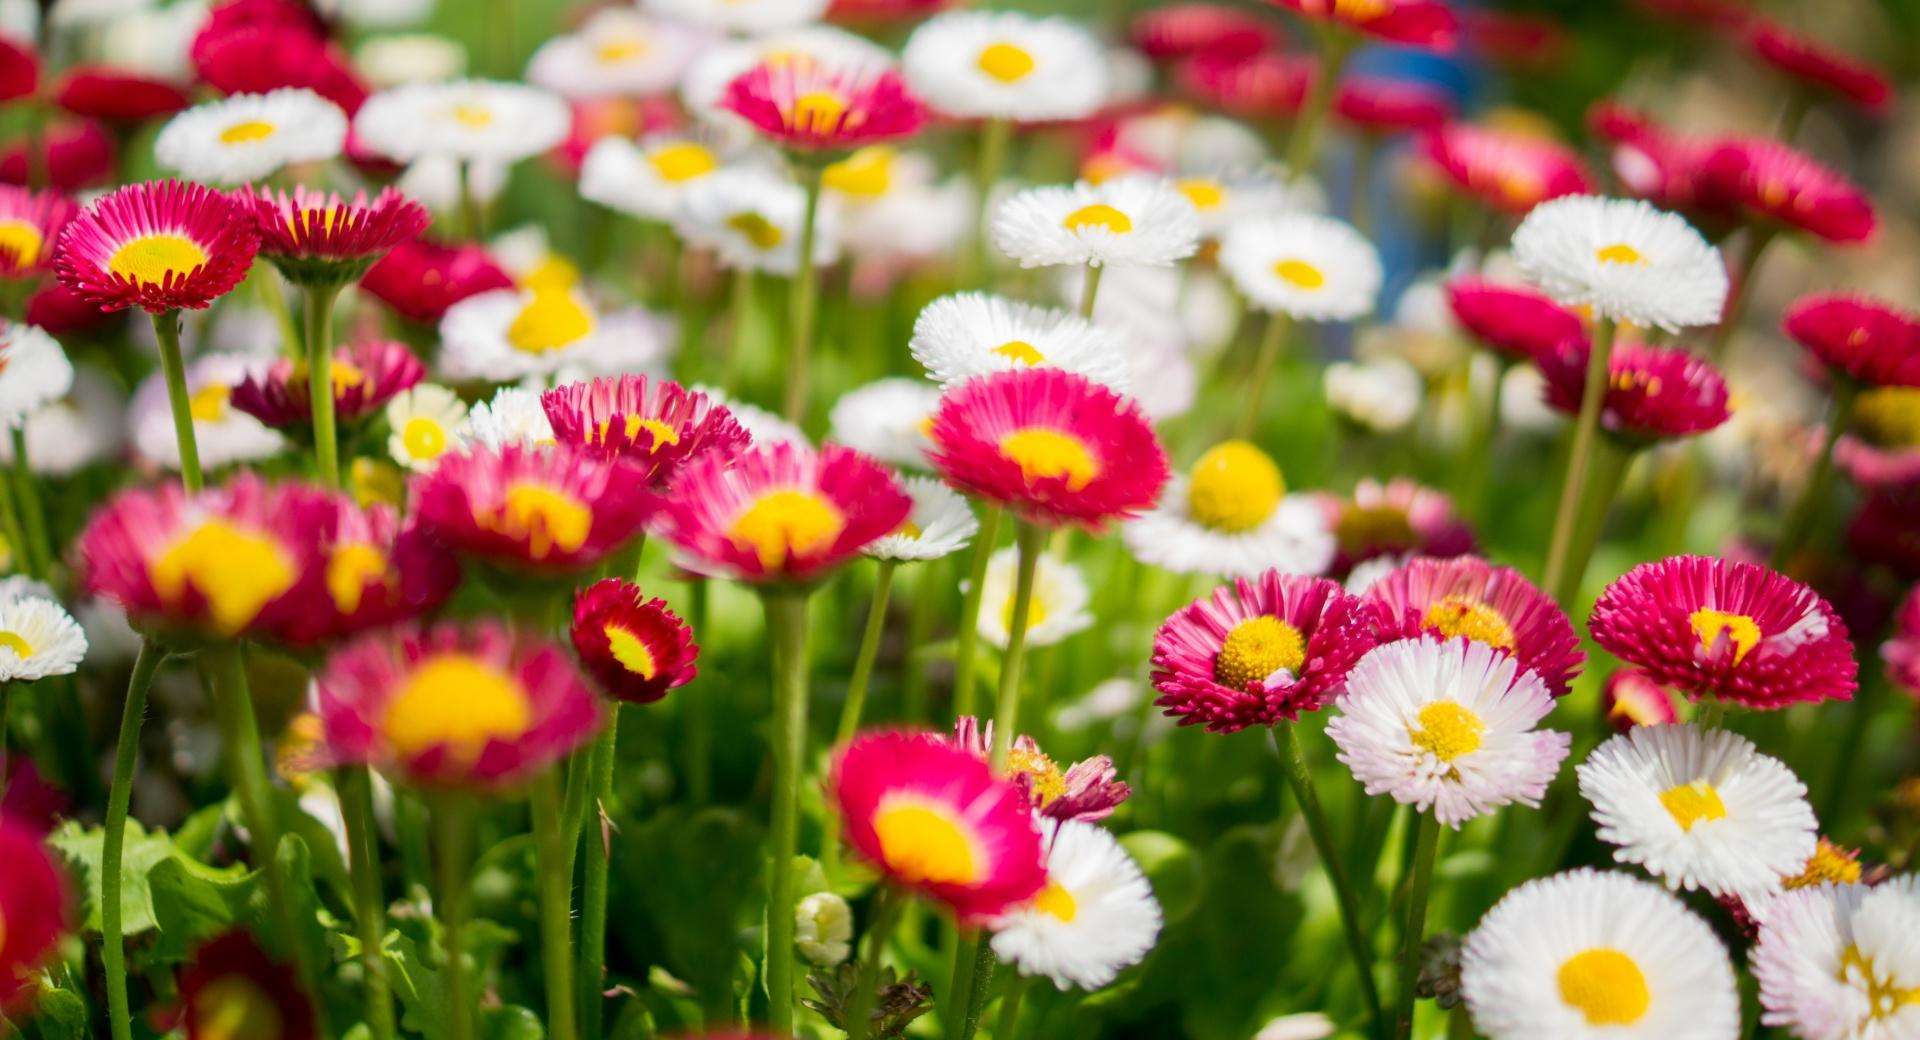 Colorful Daisies Flowers wallpapers HD quality